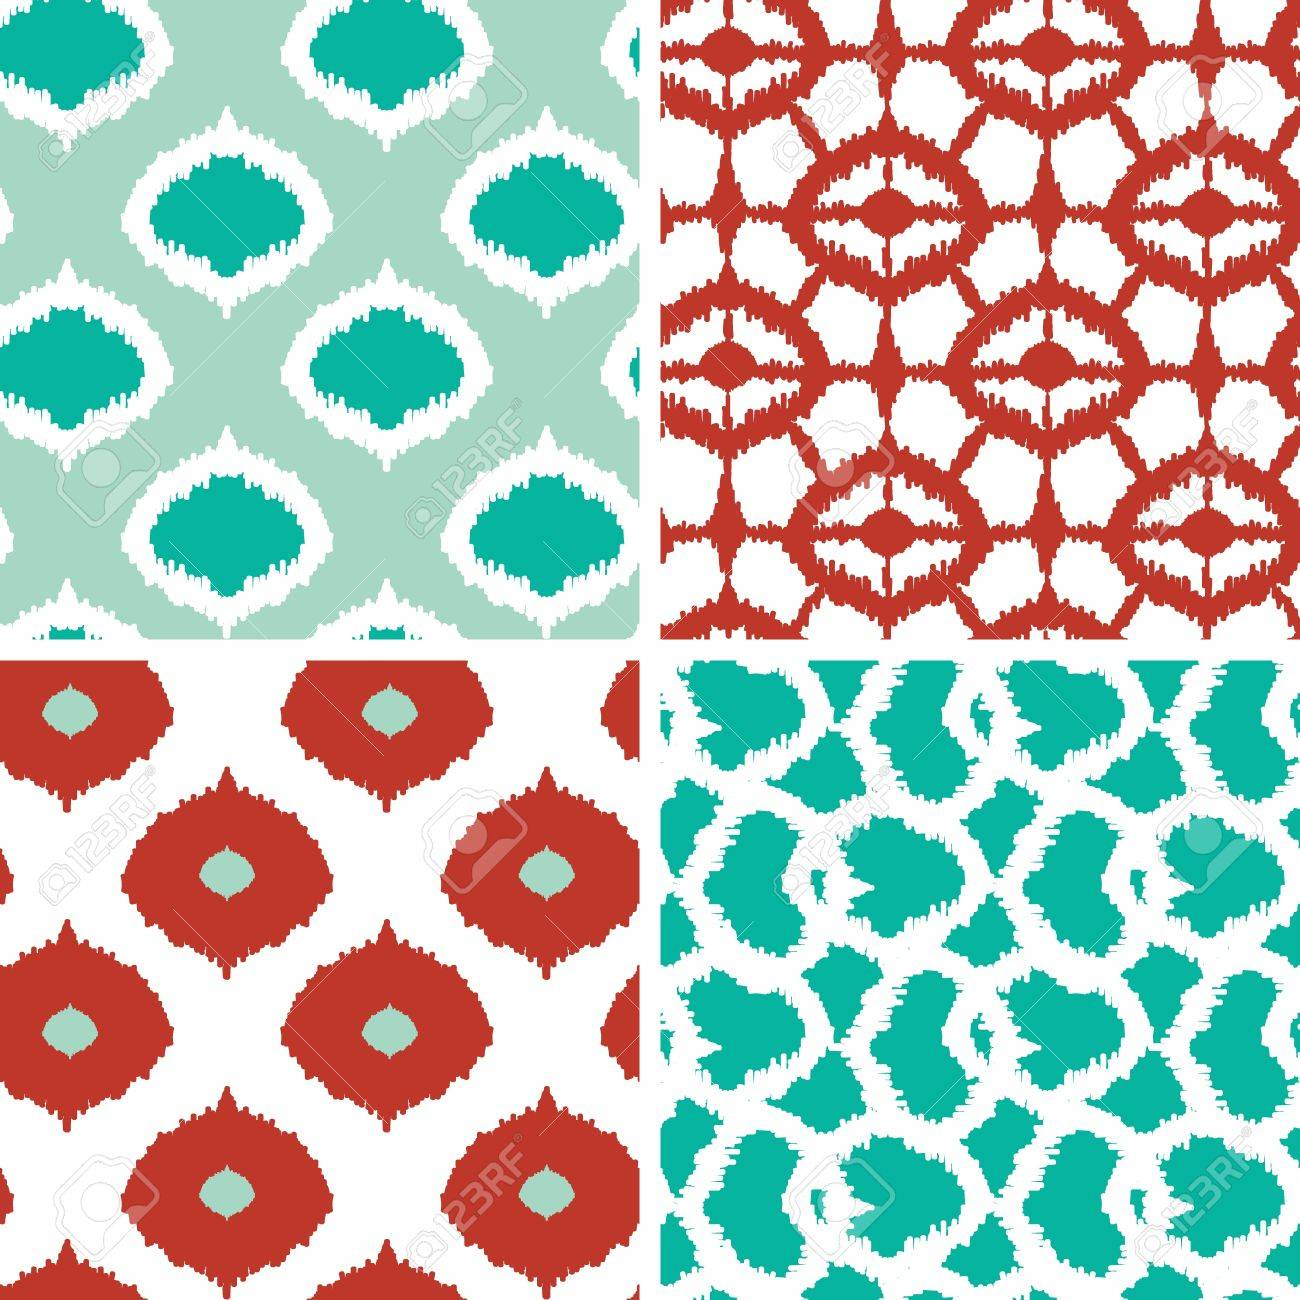 Set of green and red ikat geometric seamless patterns backgrounds - 19935283